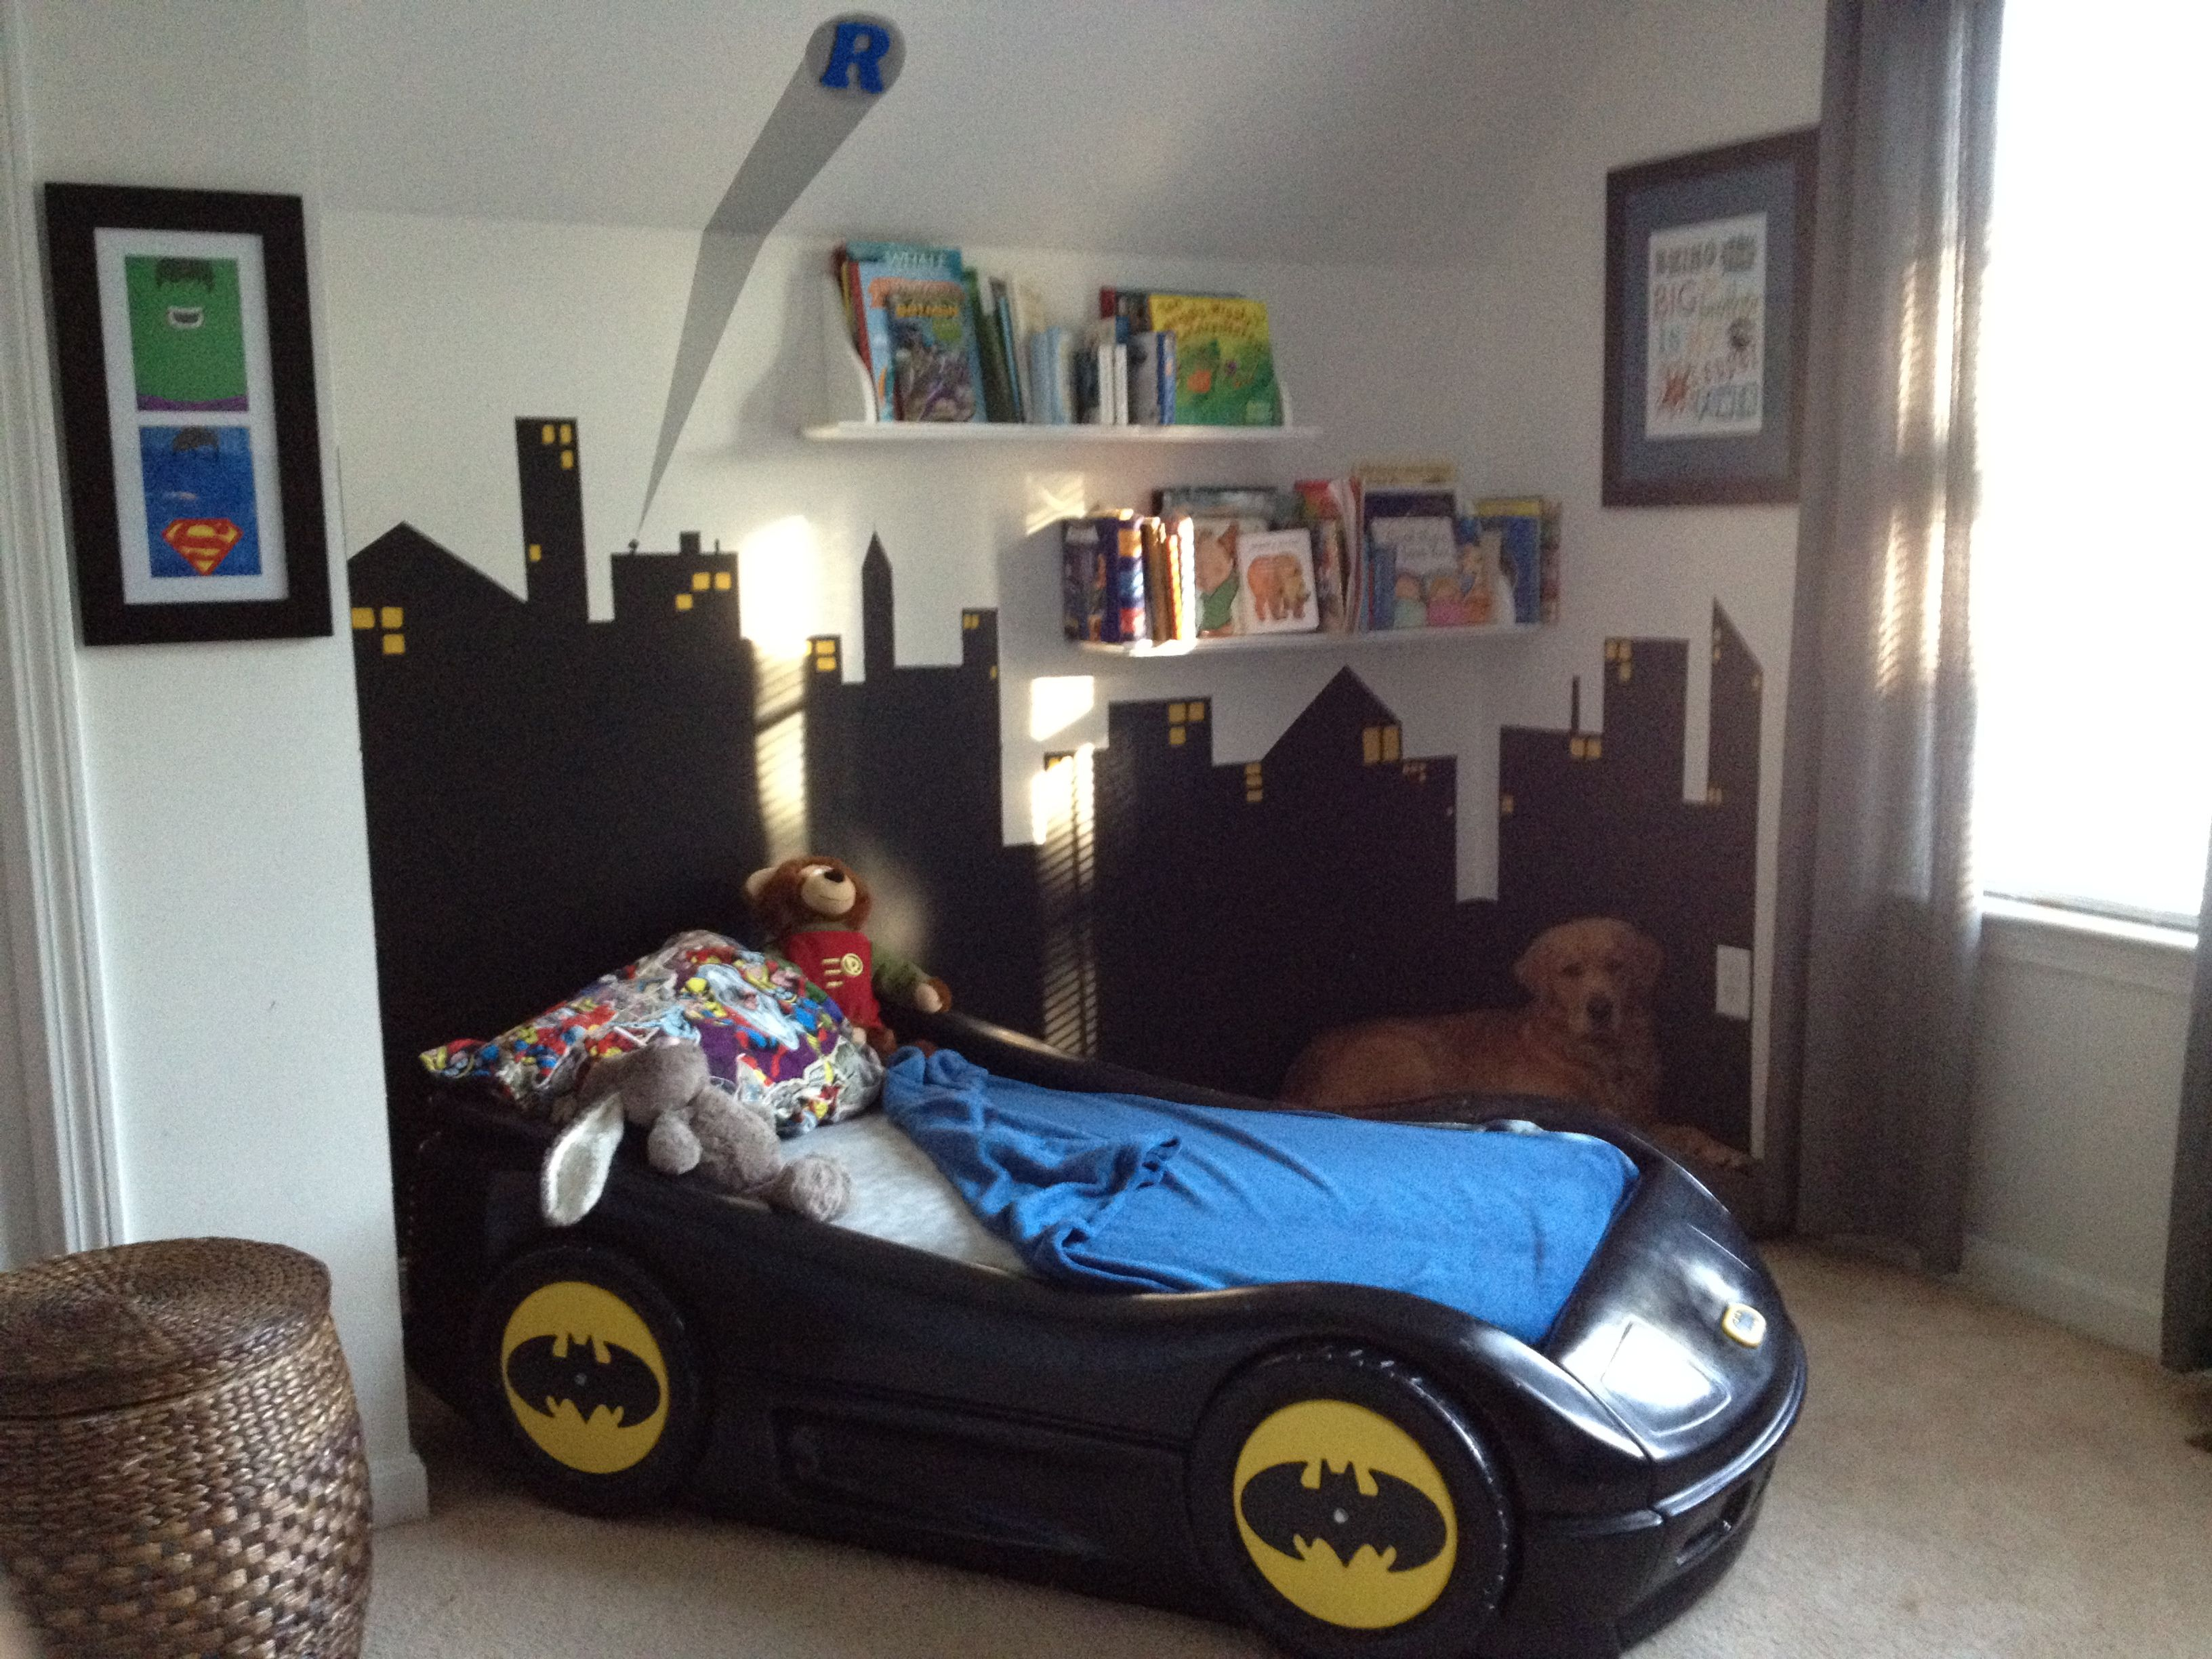 Super Hero Room Love The Painted Car Bed